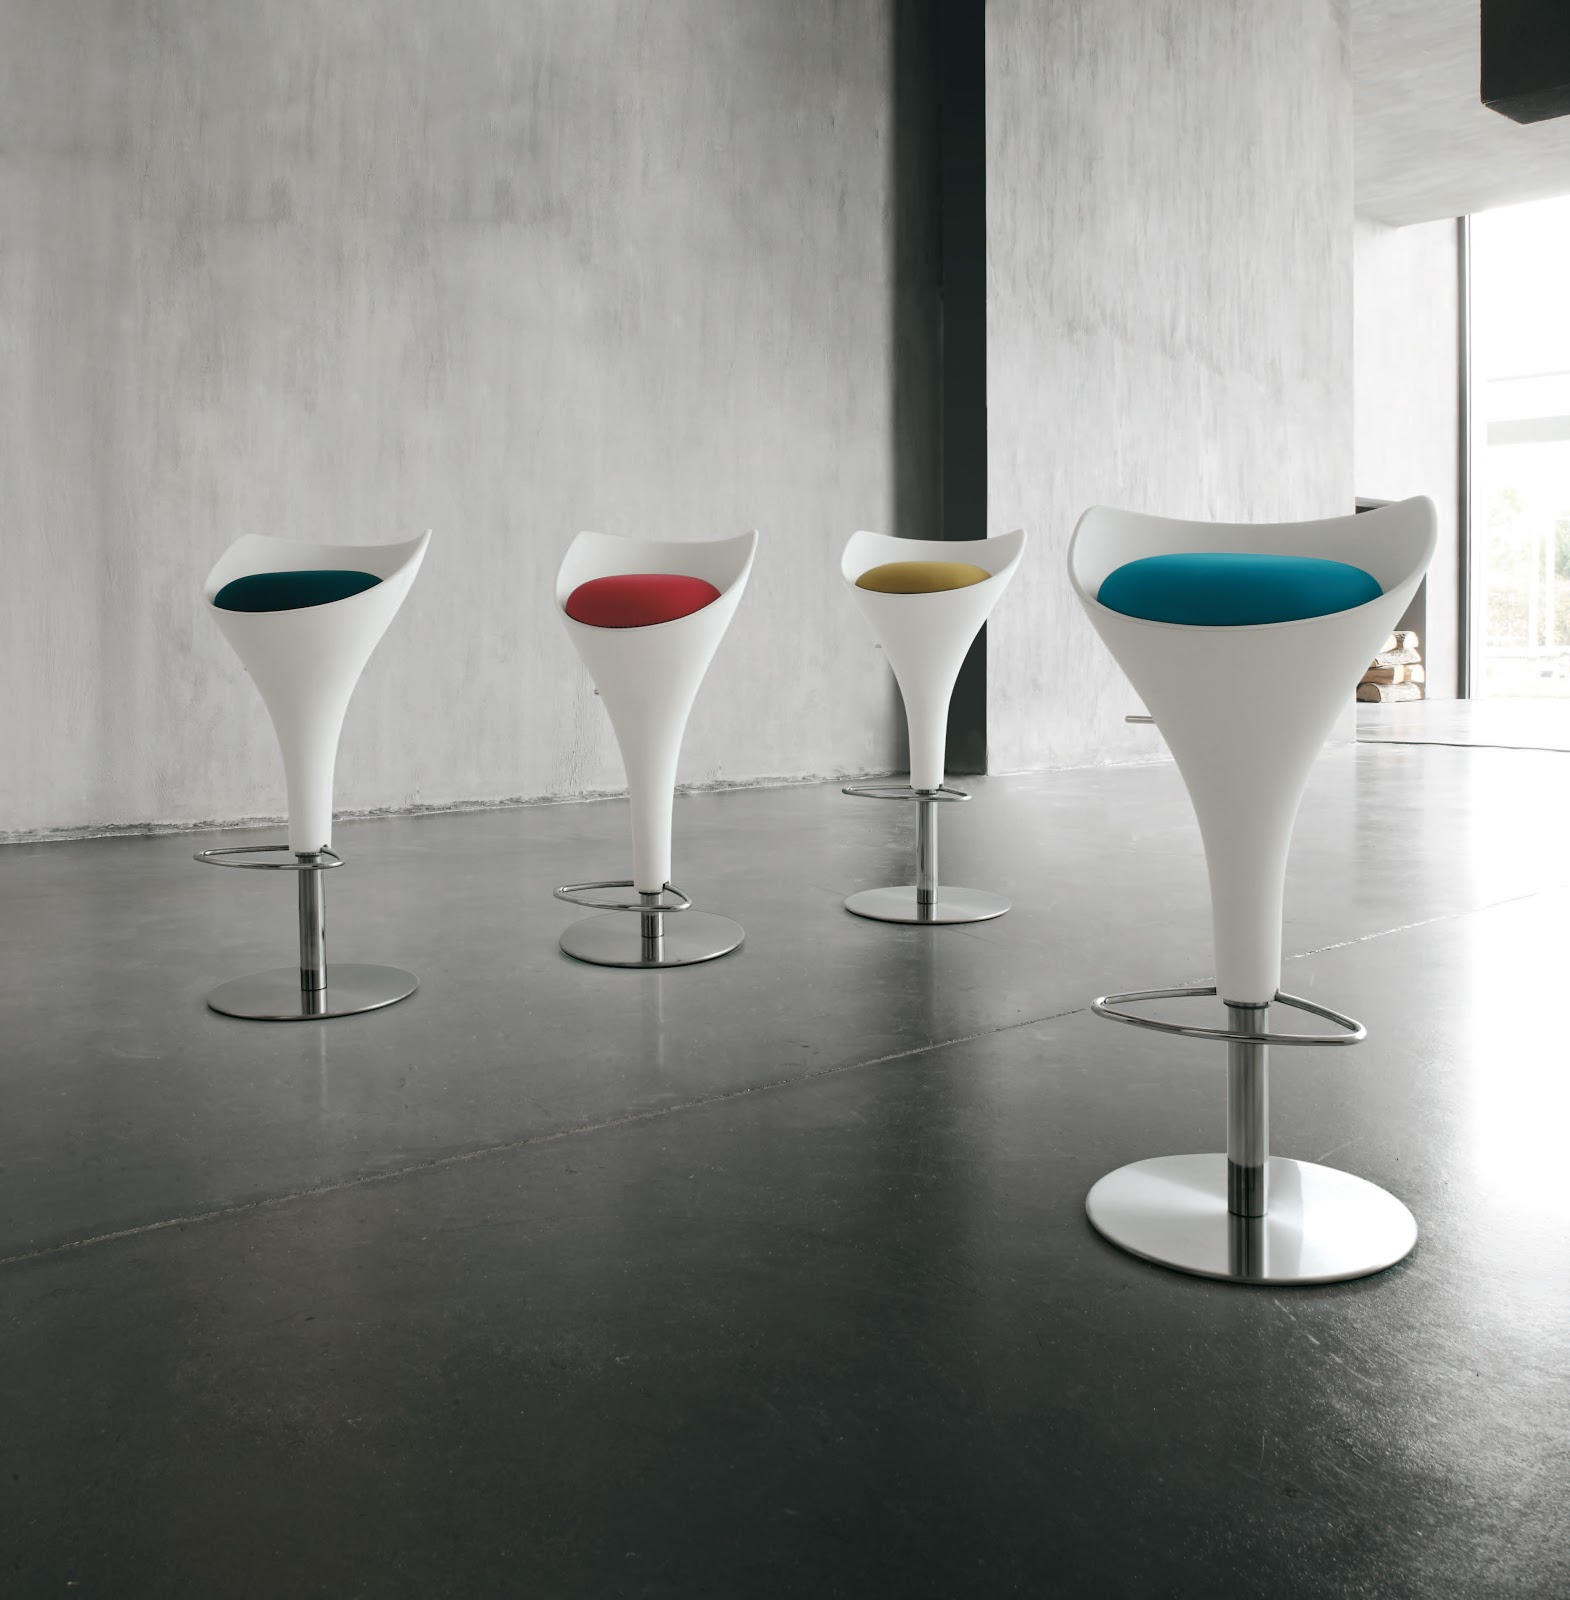 Inspiration mobilier design for Tabouret design cuisine